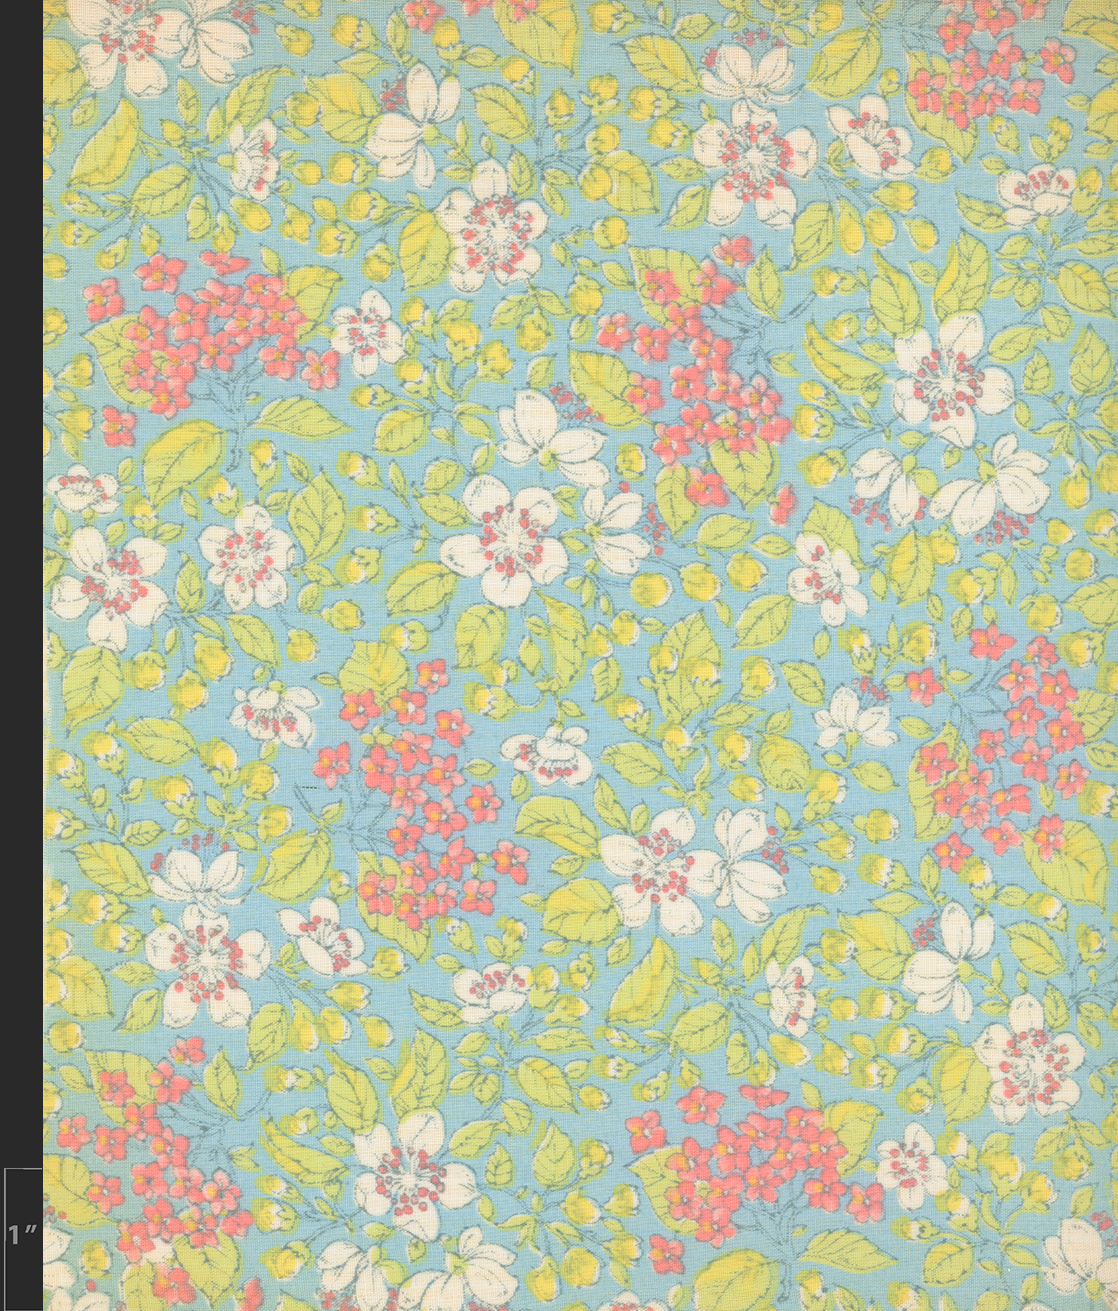 Marielle Bancou Segal floral printed textile design for The Villager 1960s full 4 Drexel Digital Museum 07F